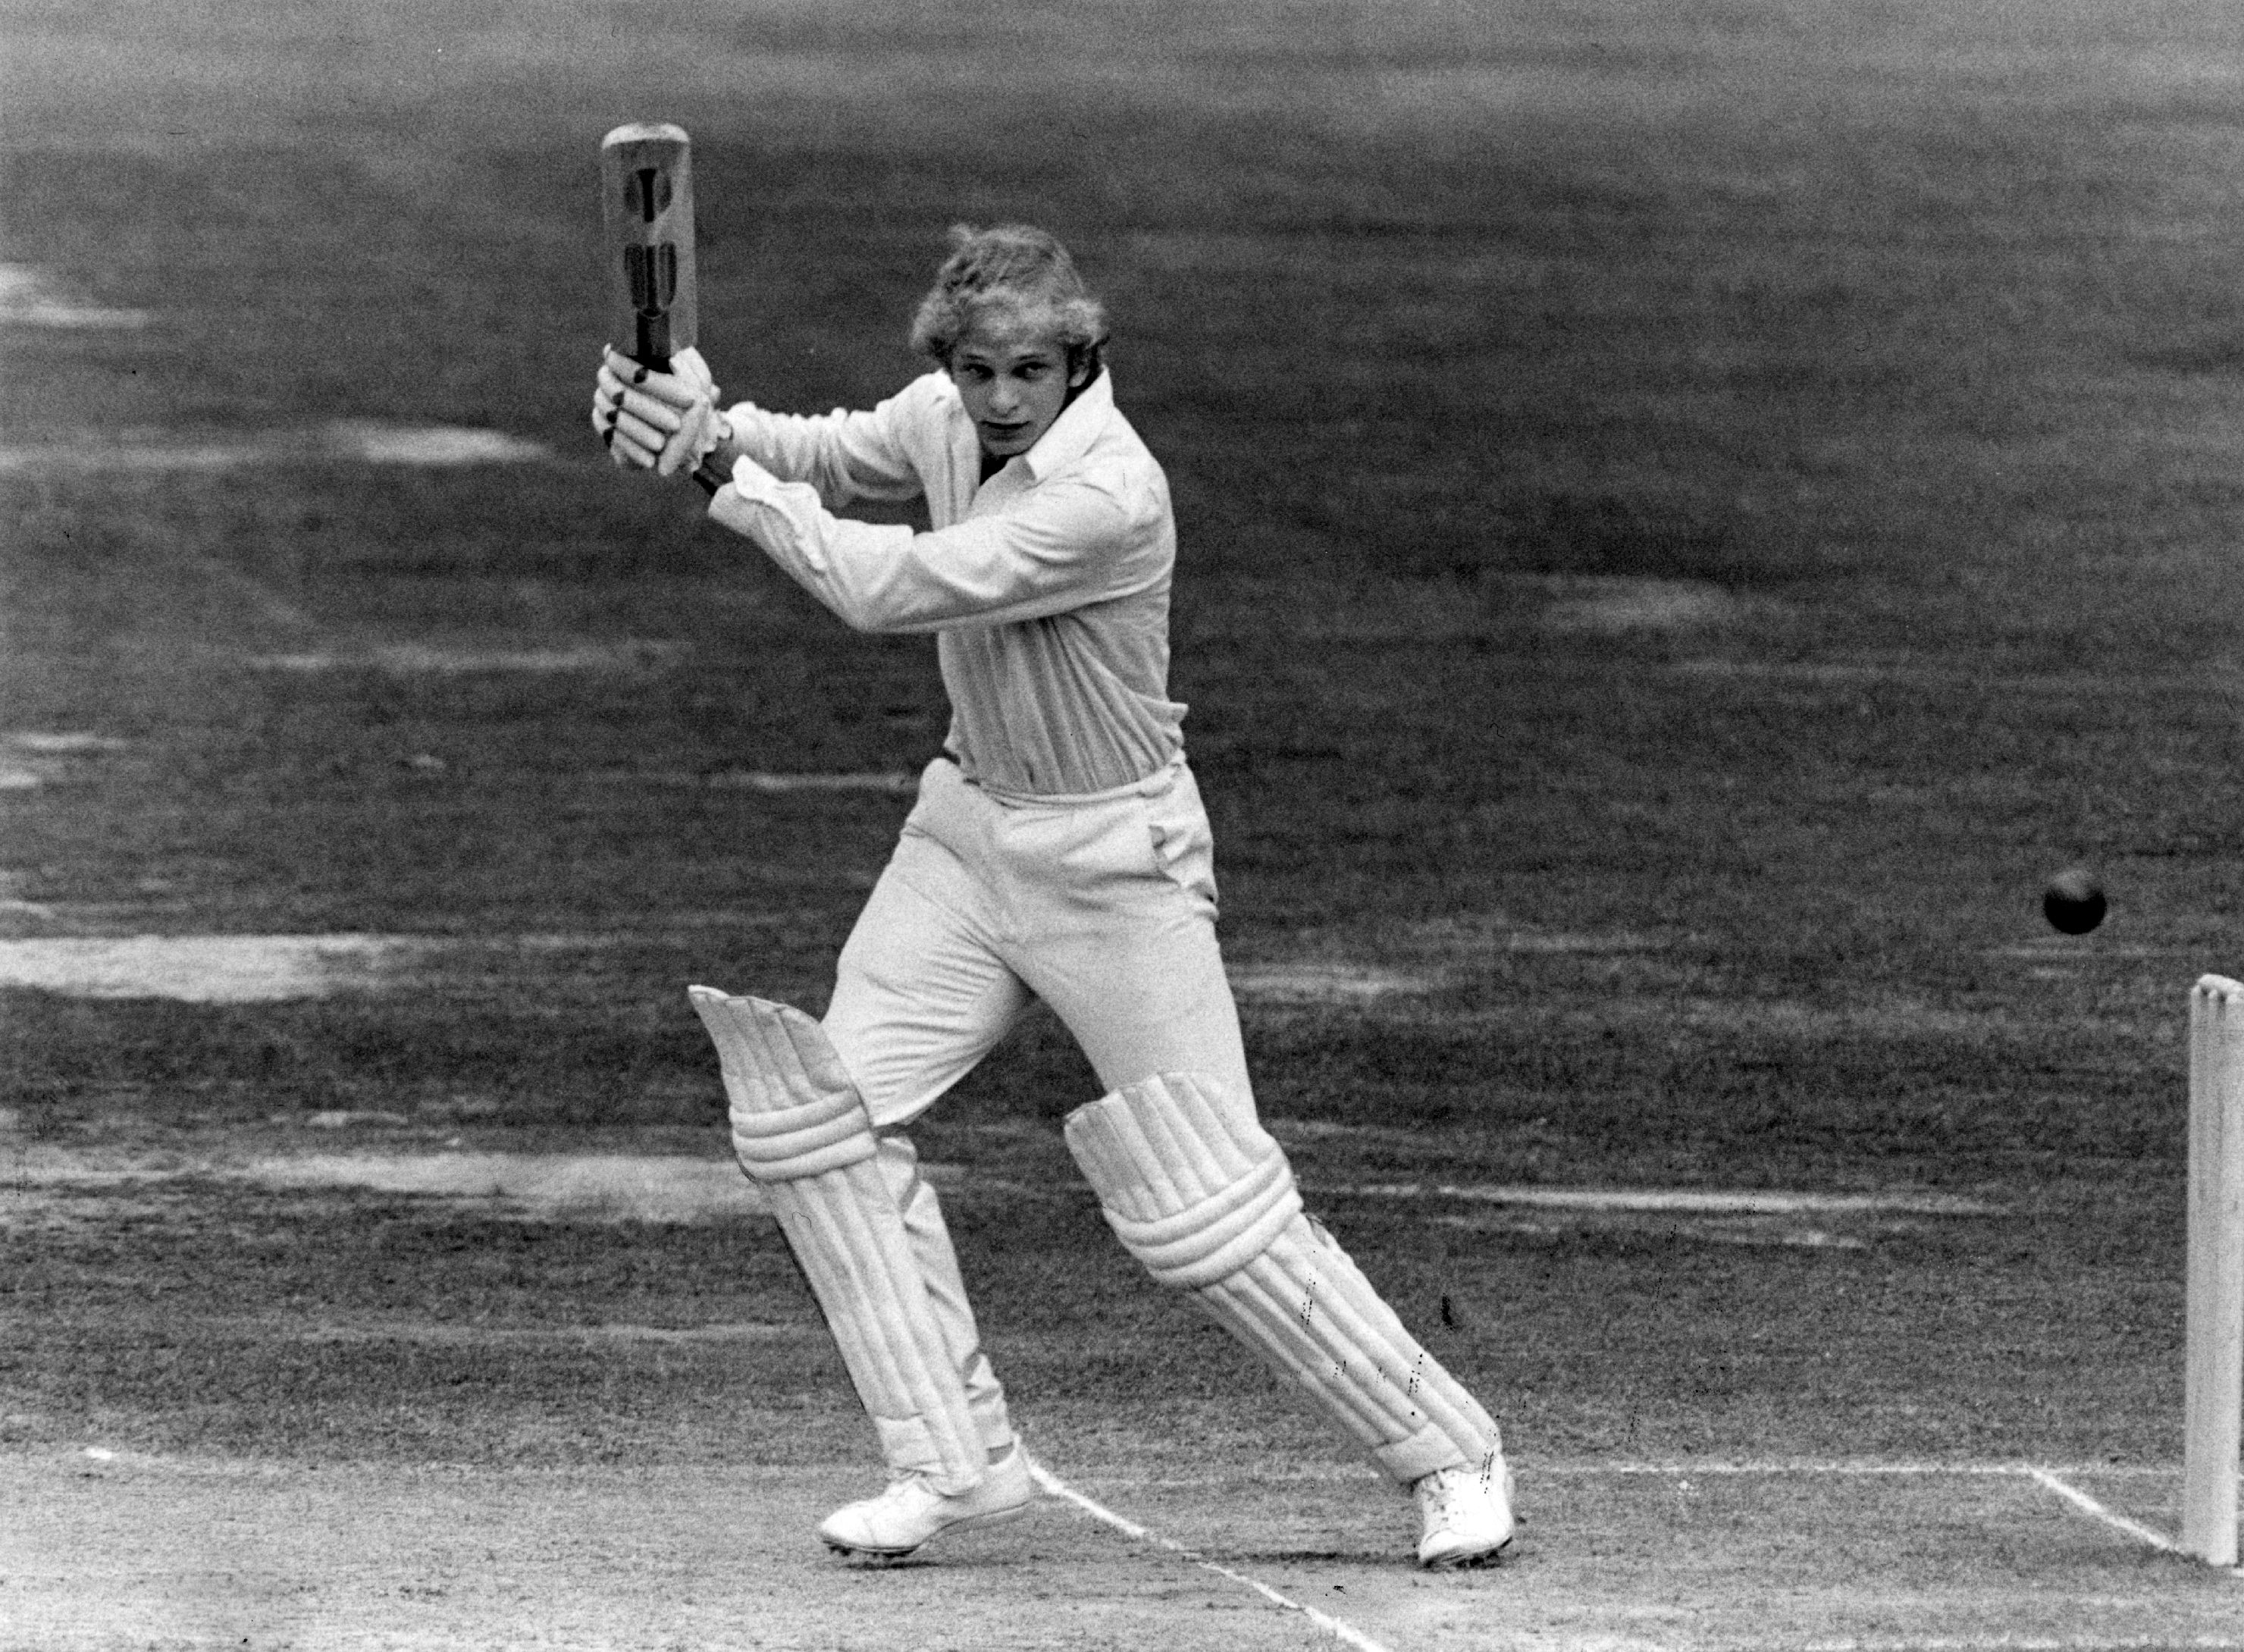 Watching with my heroes: a tale of a journeyman cricketer